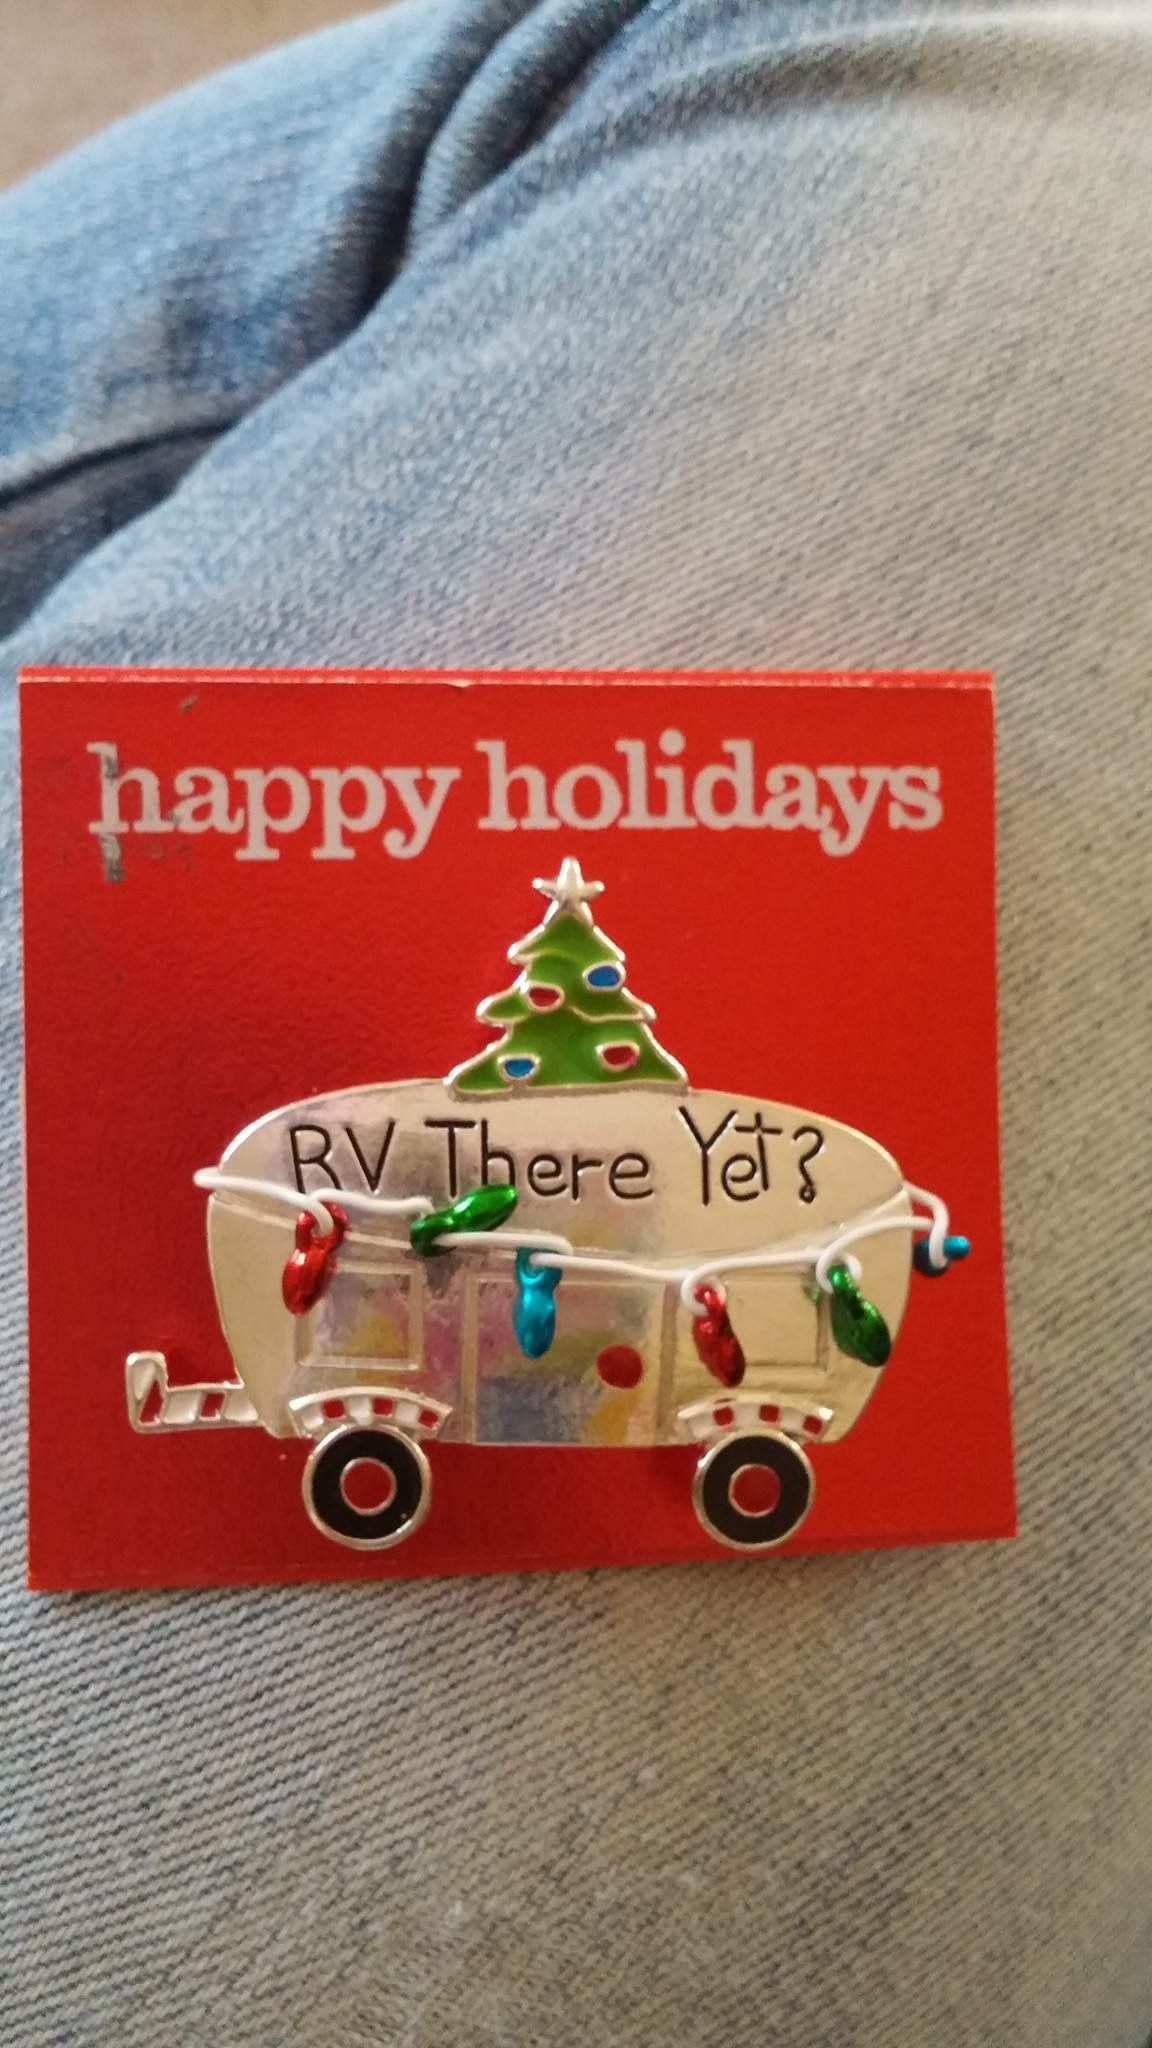 Happy Holidays RV style! | Camping & Roughing it in the Great ...